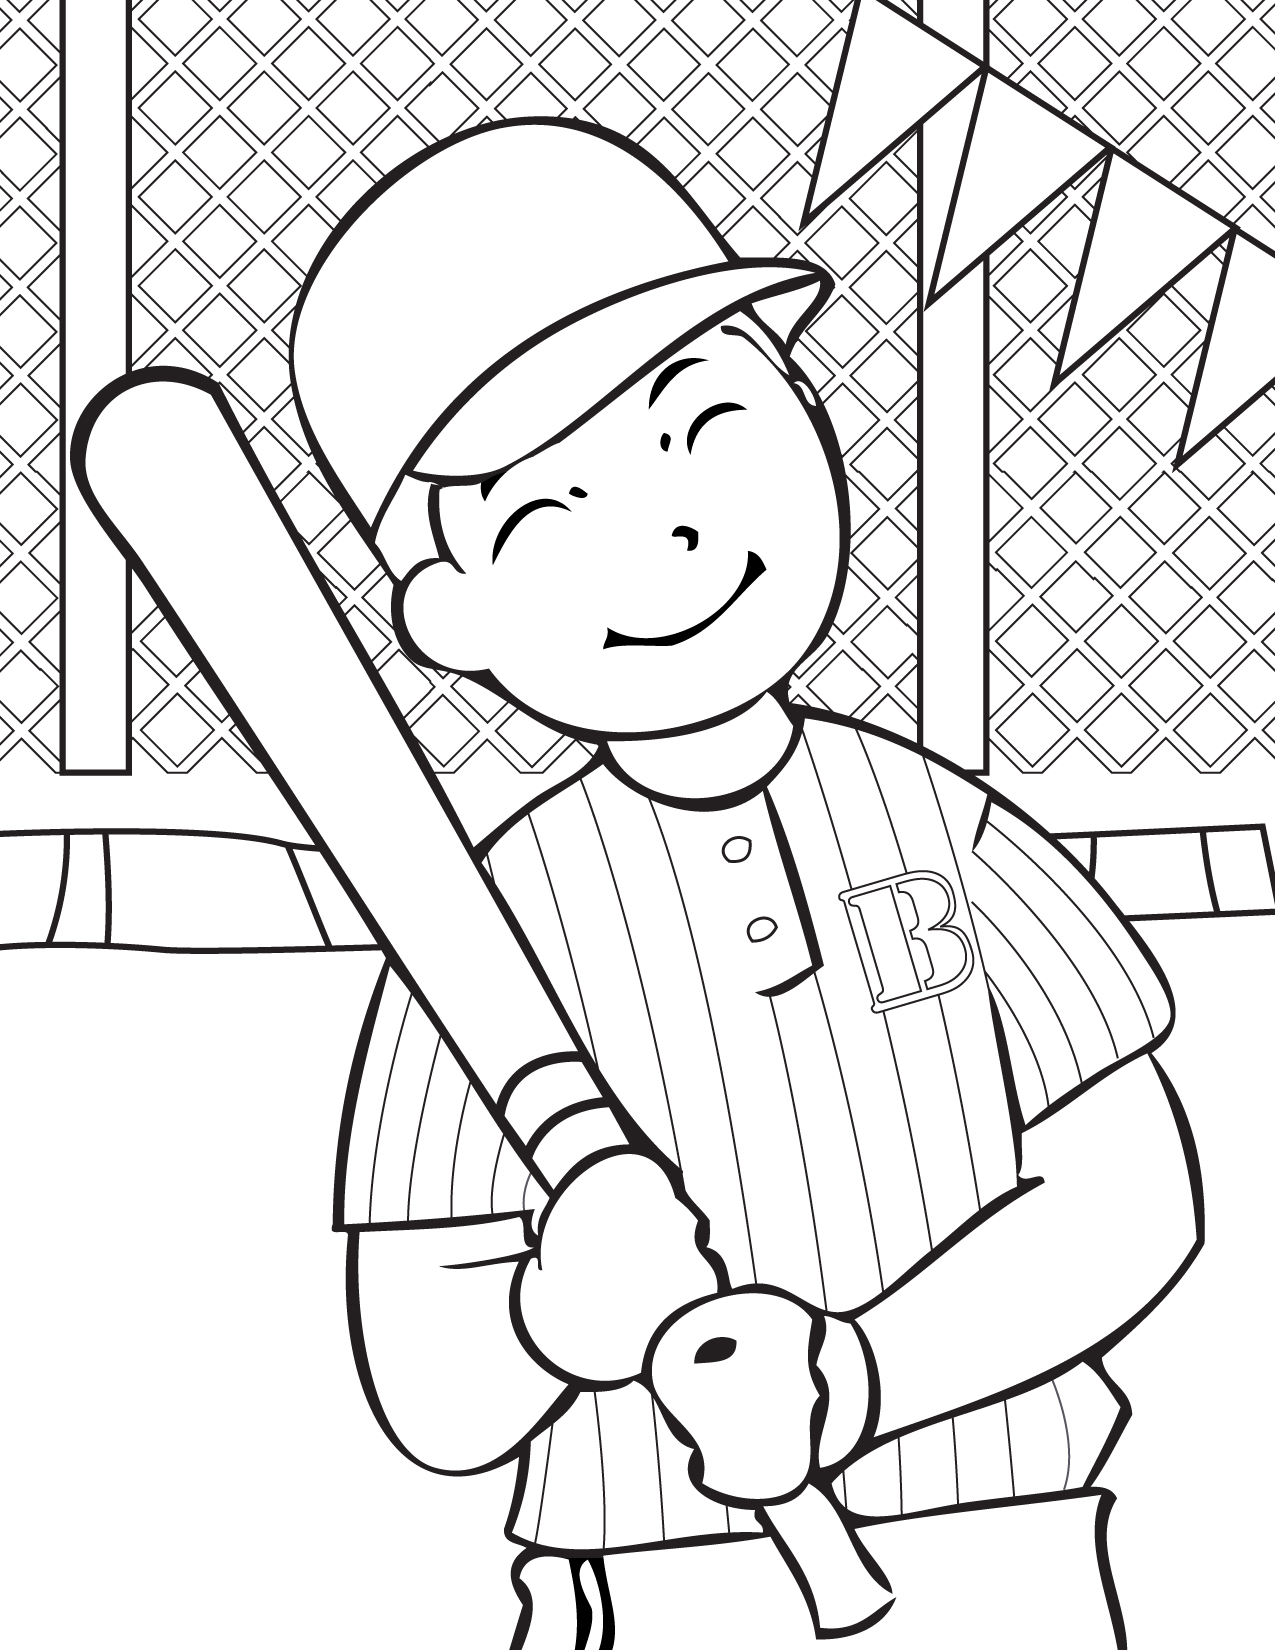 toddler coloring pages printable - free printable baseball coloring pages for kids best